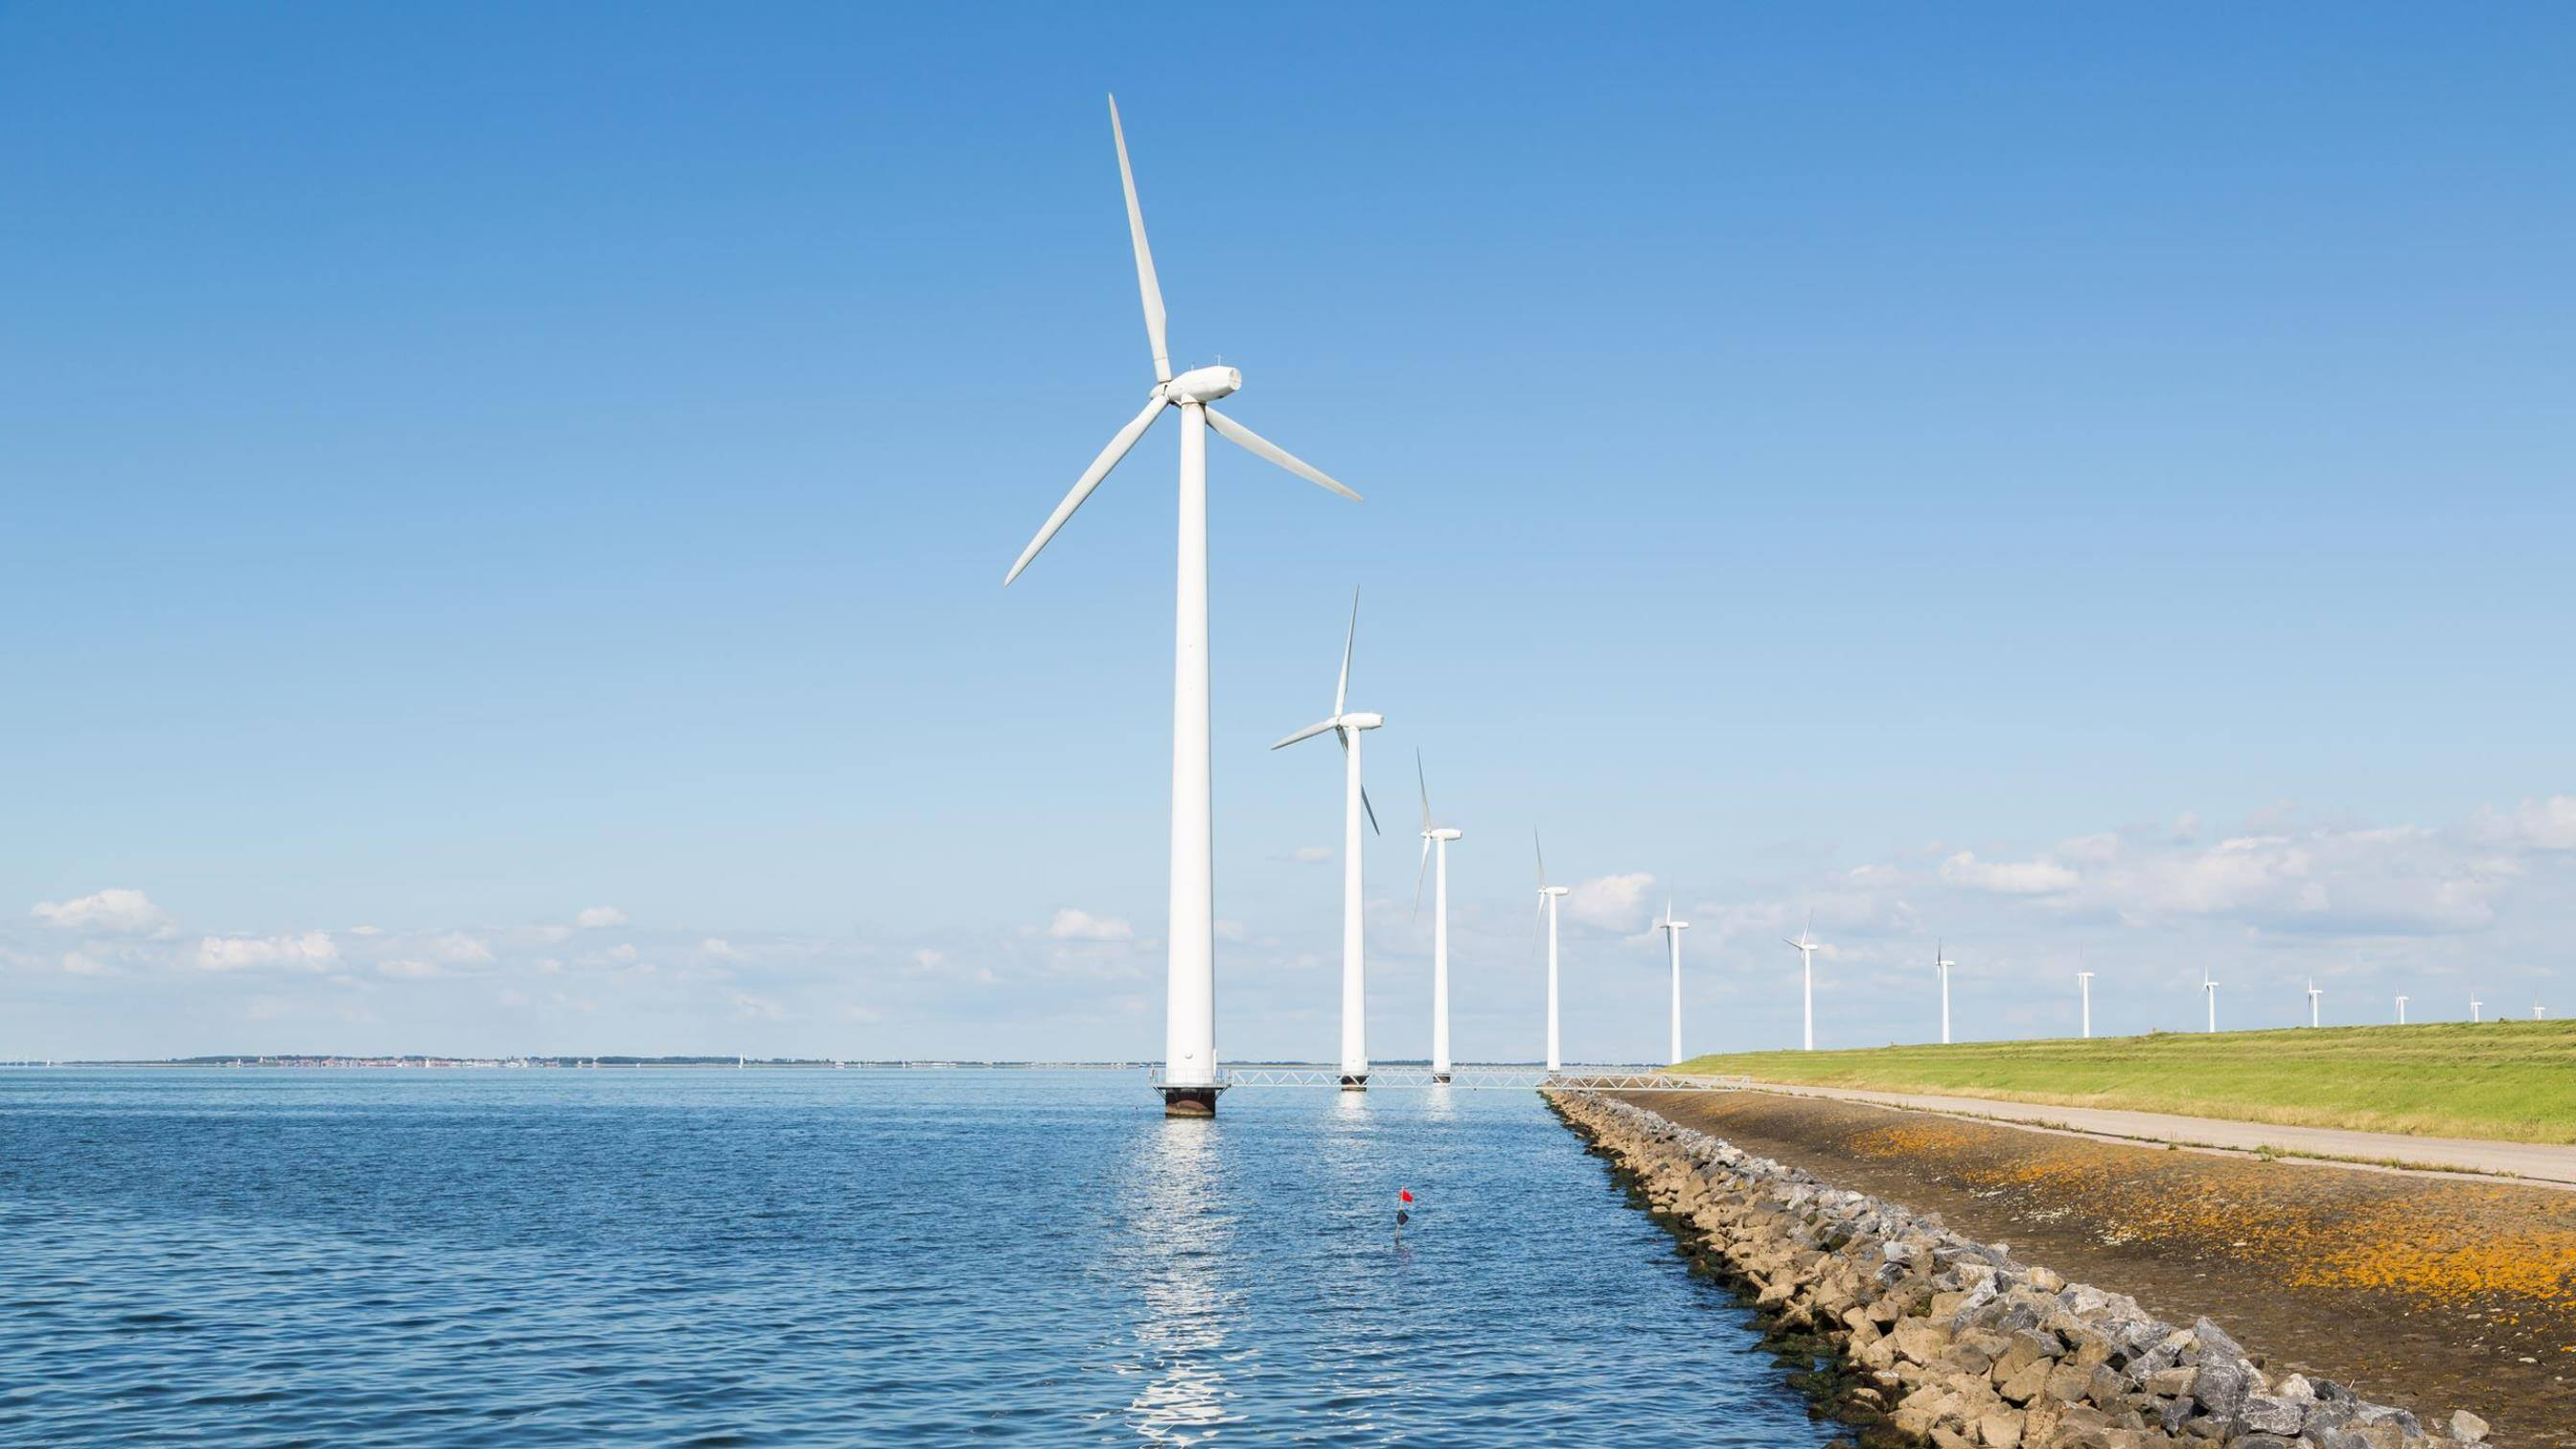 Generators help power wind farm